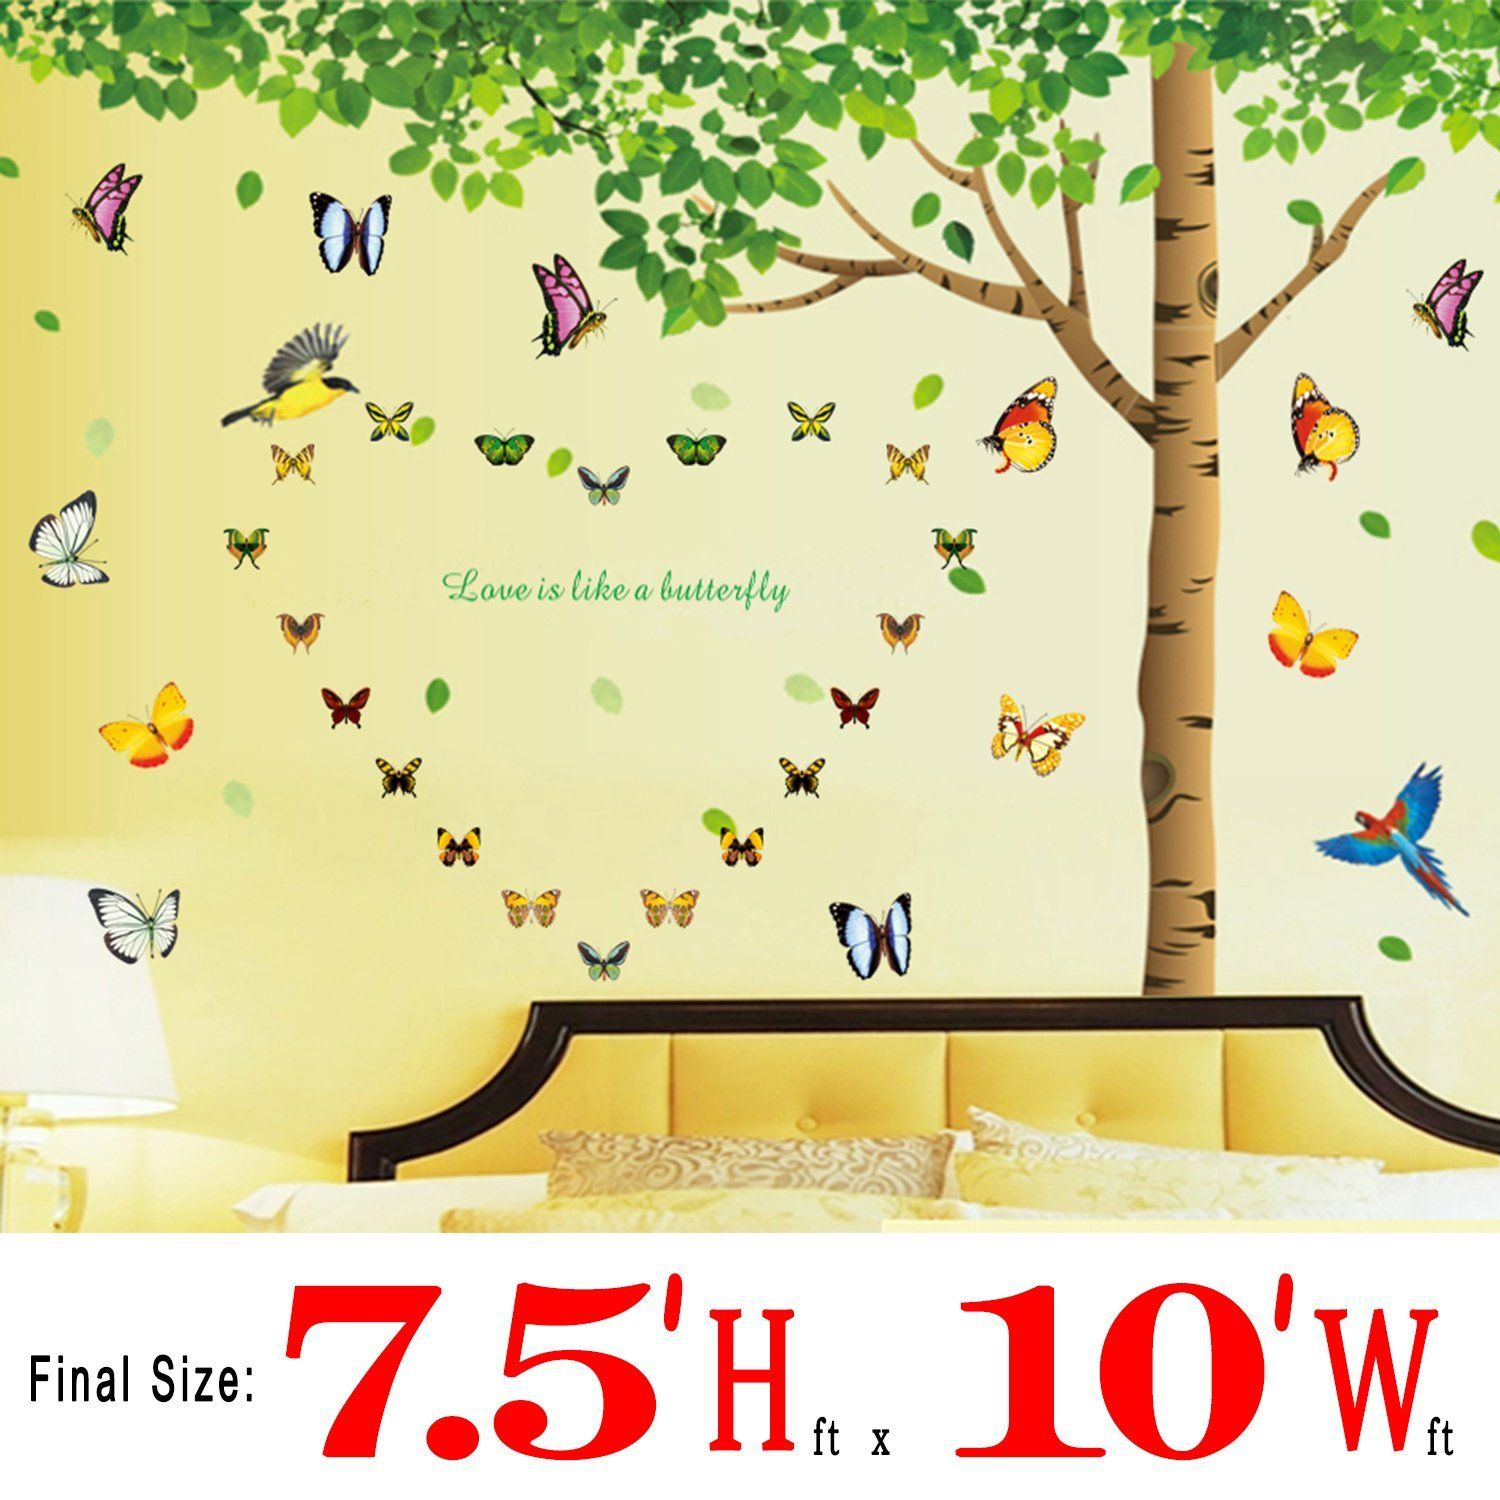 Colorful-decals__ 7.4\'(h) X 9.7\'(w) More Attachments for Butterflies ...